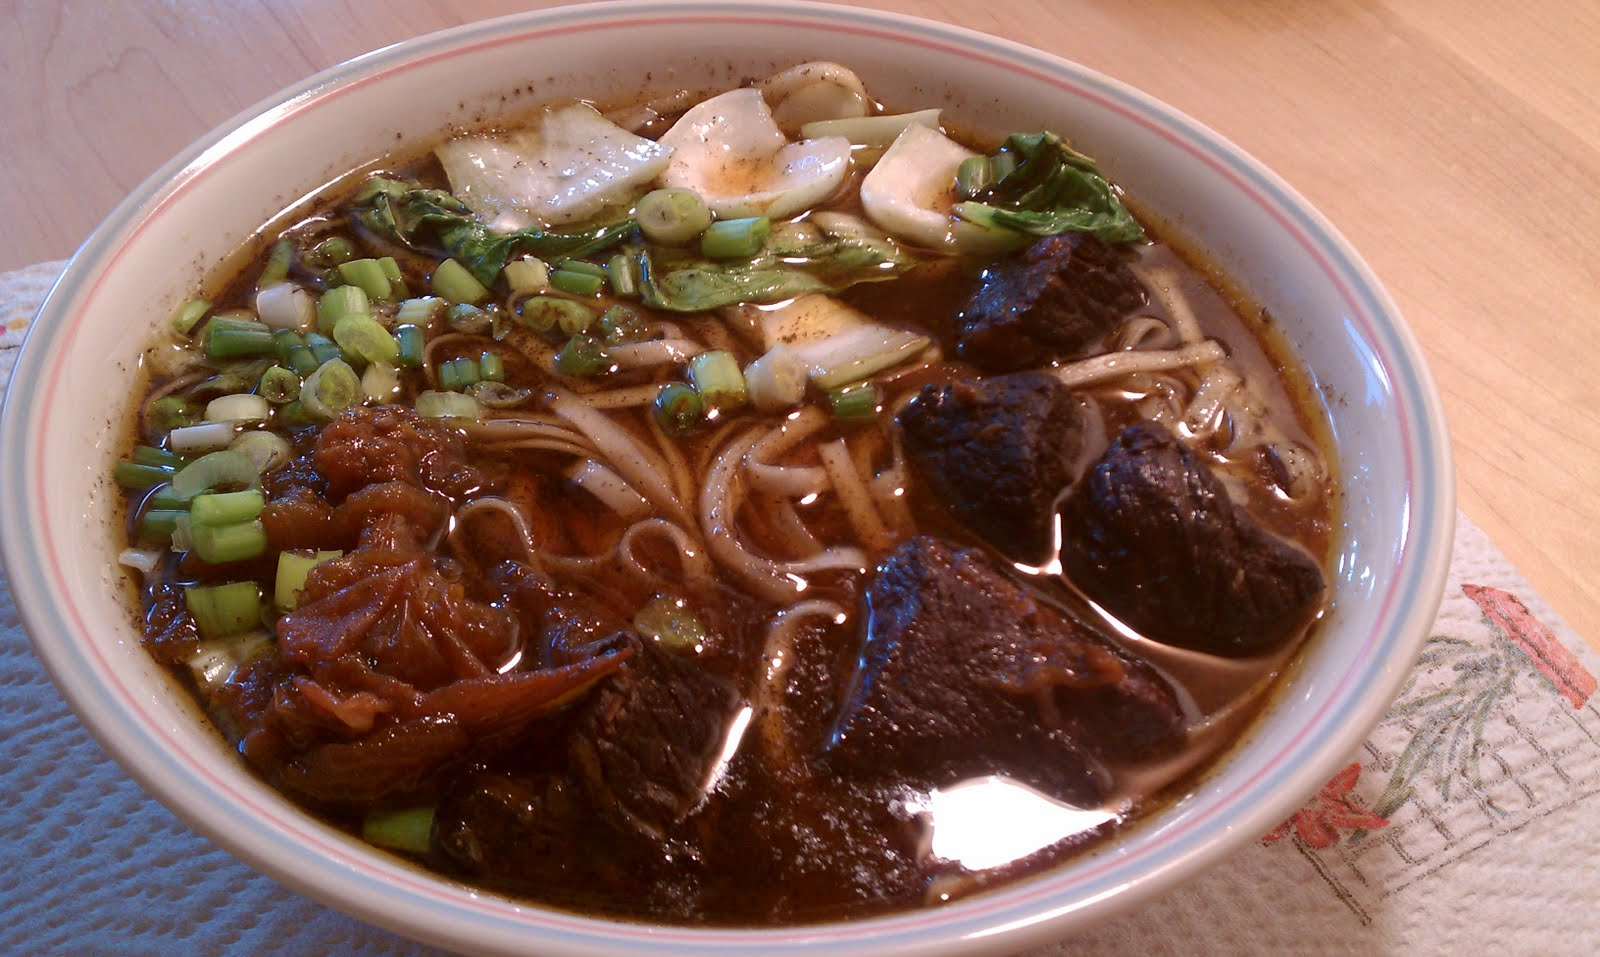 ... taiwanese beef noodle soup recipe on food52 taiwanese beef noodle soup